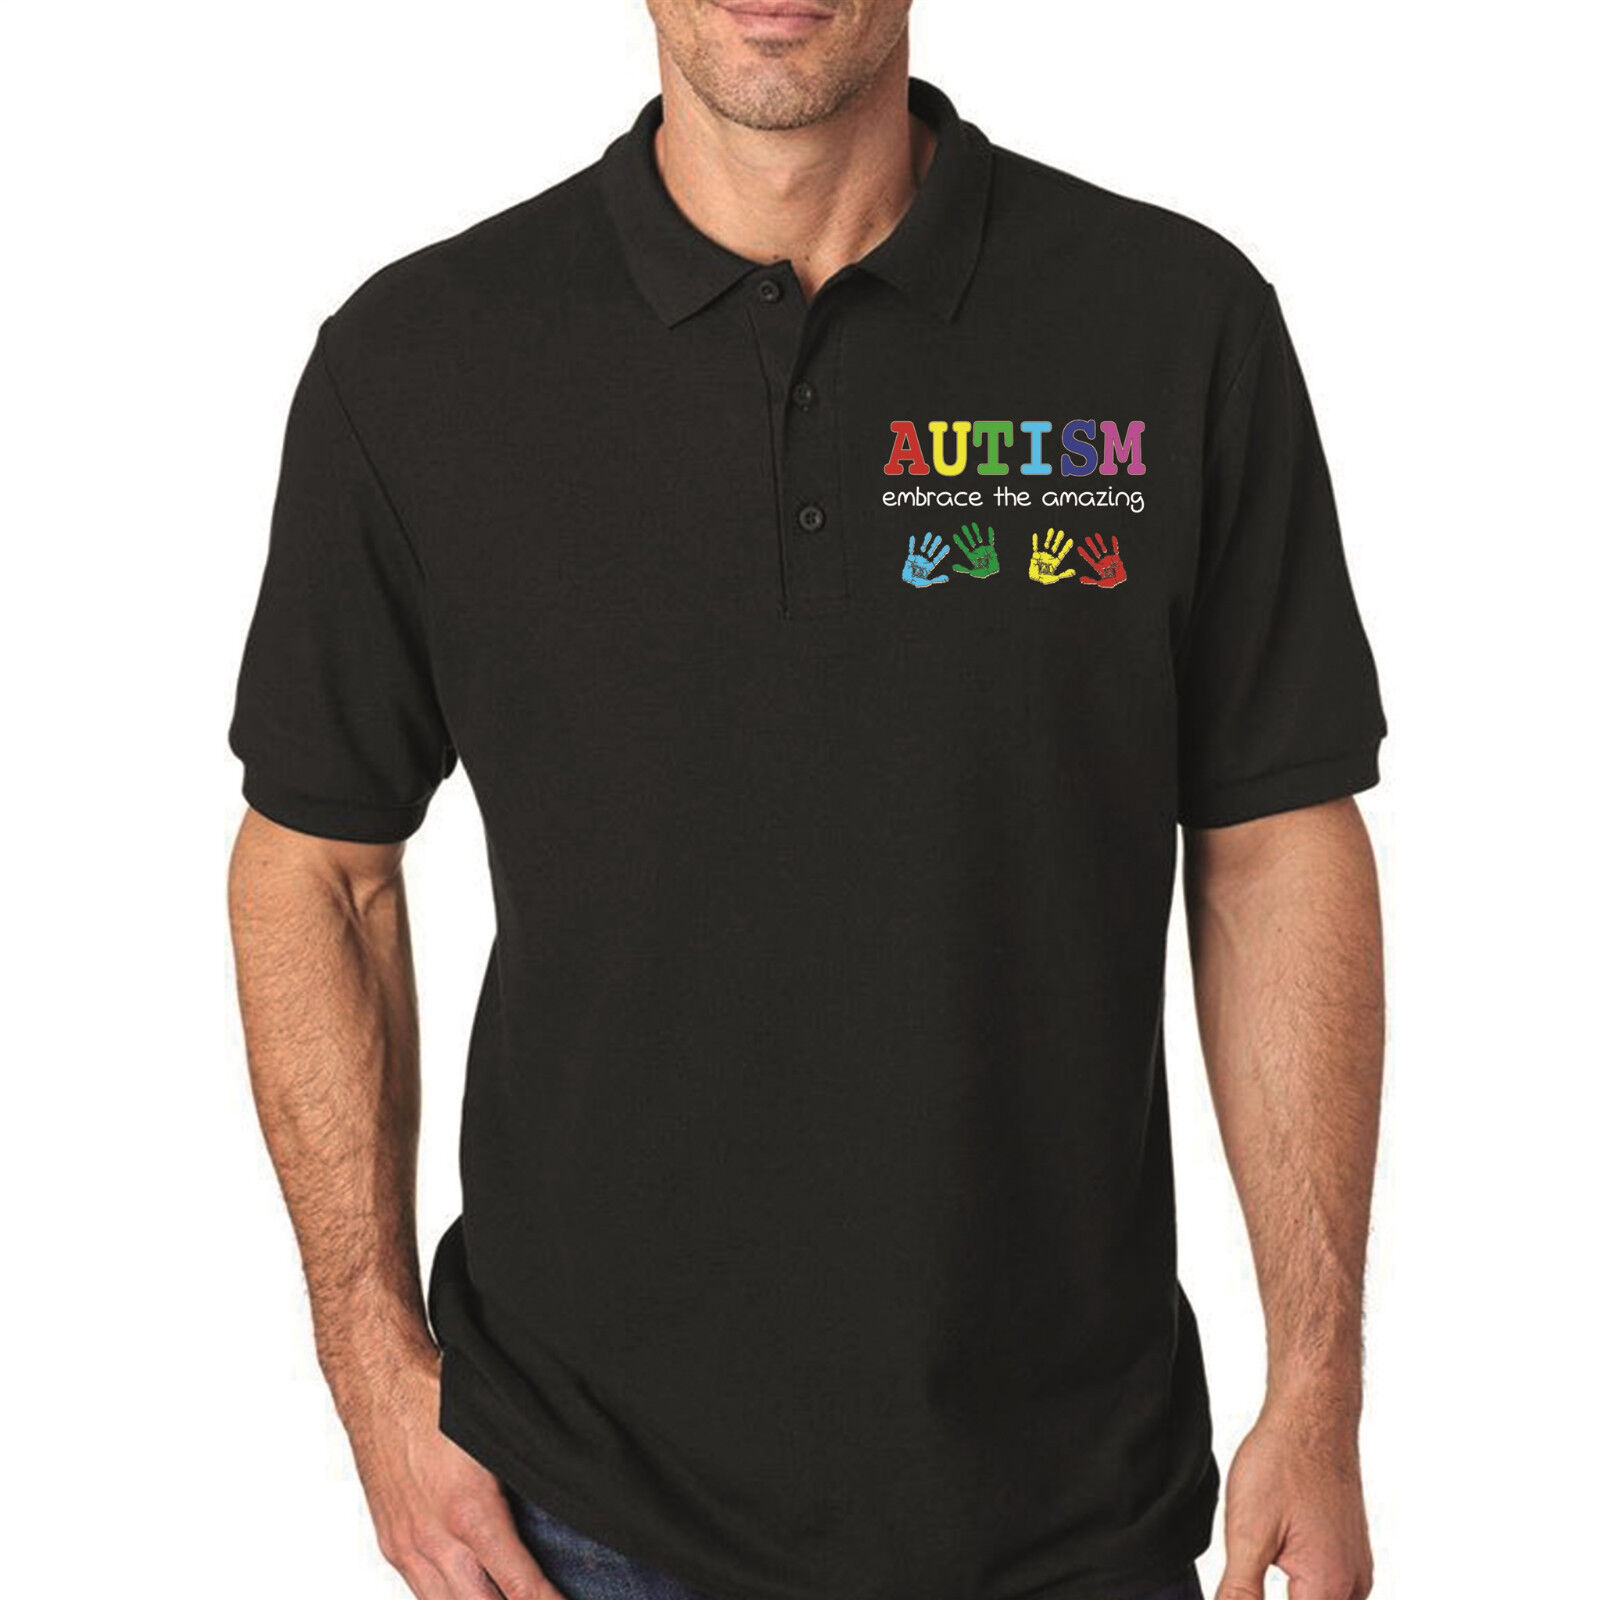 EMBROIDERY Autism Awareness Polo T-shirt Embrace the amazing Light ... 45dd757652c65